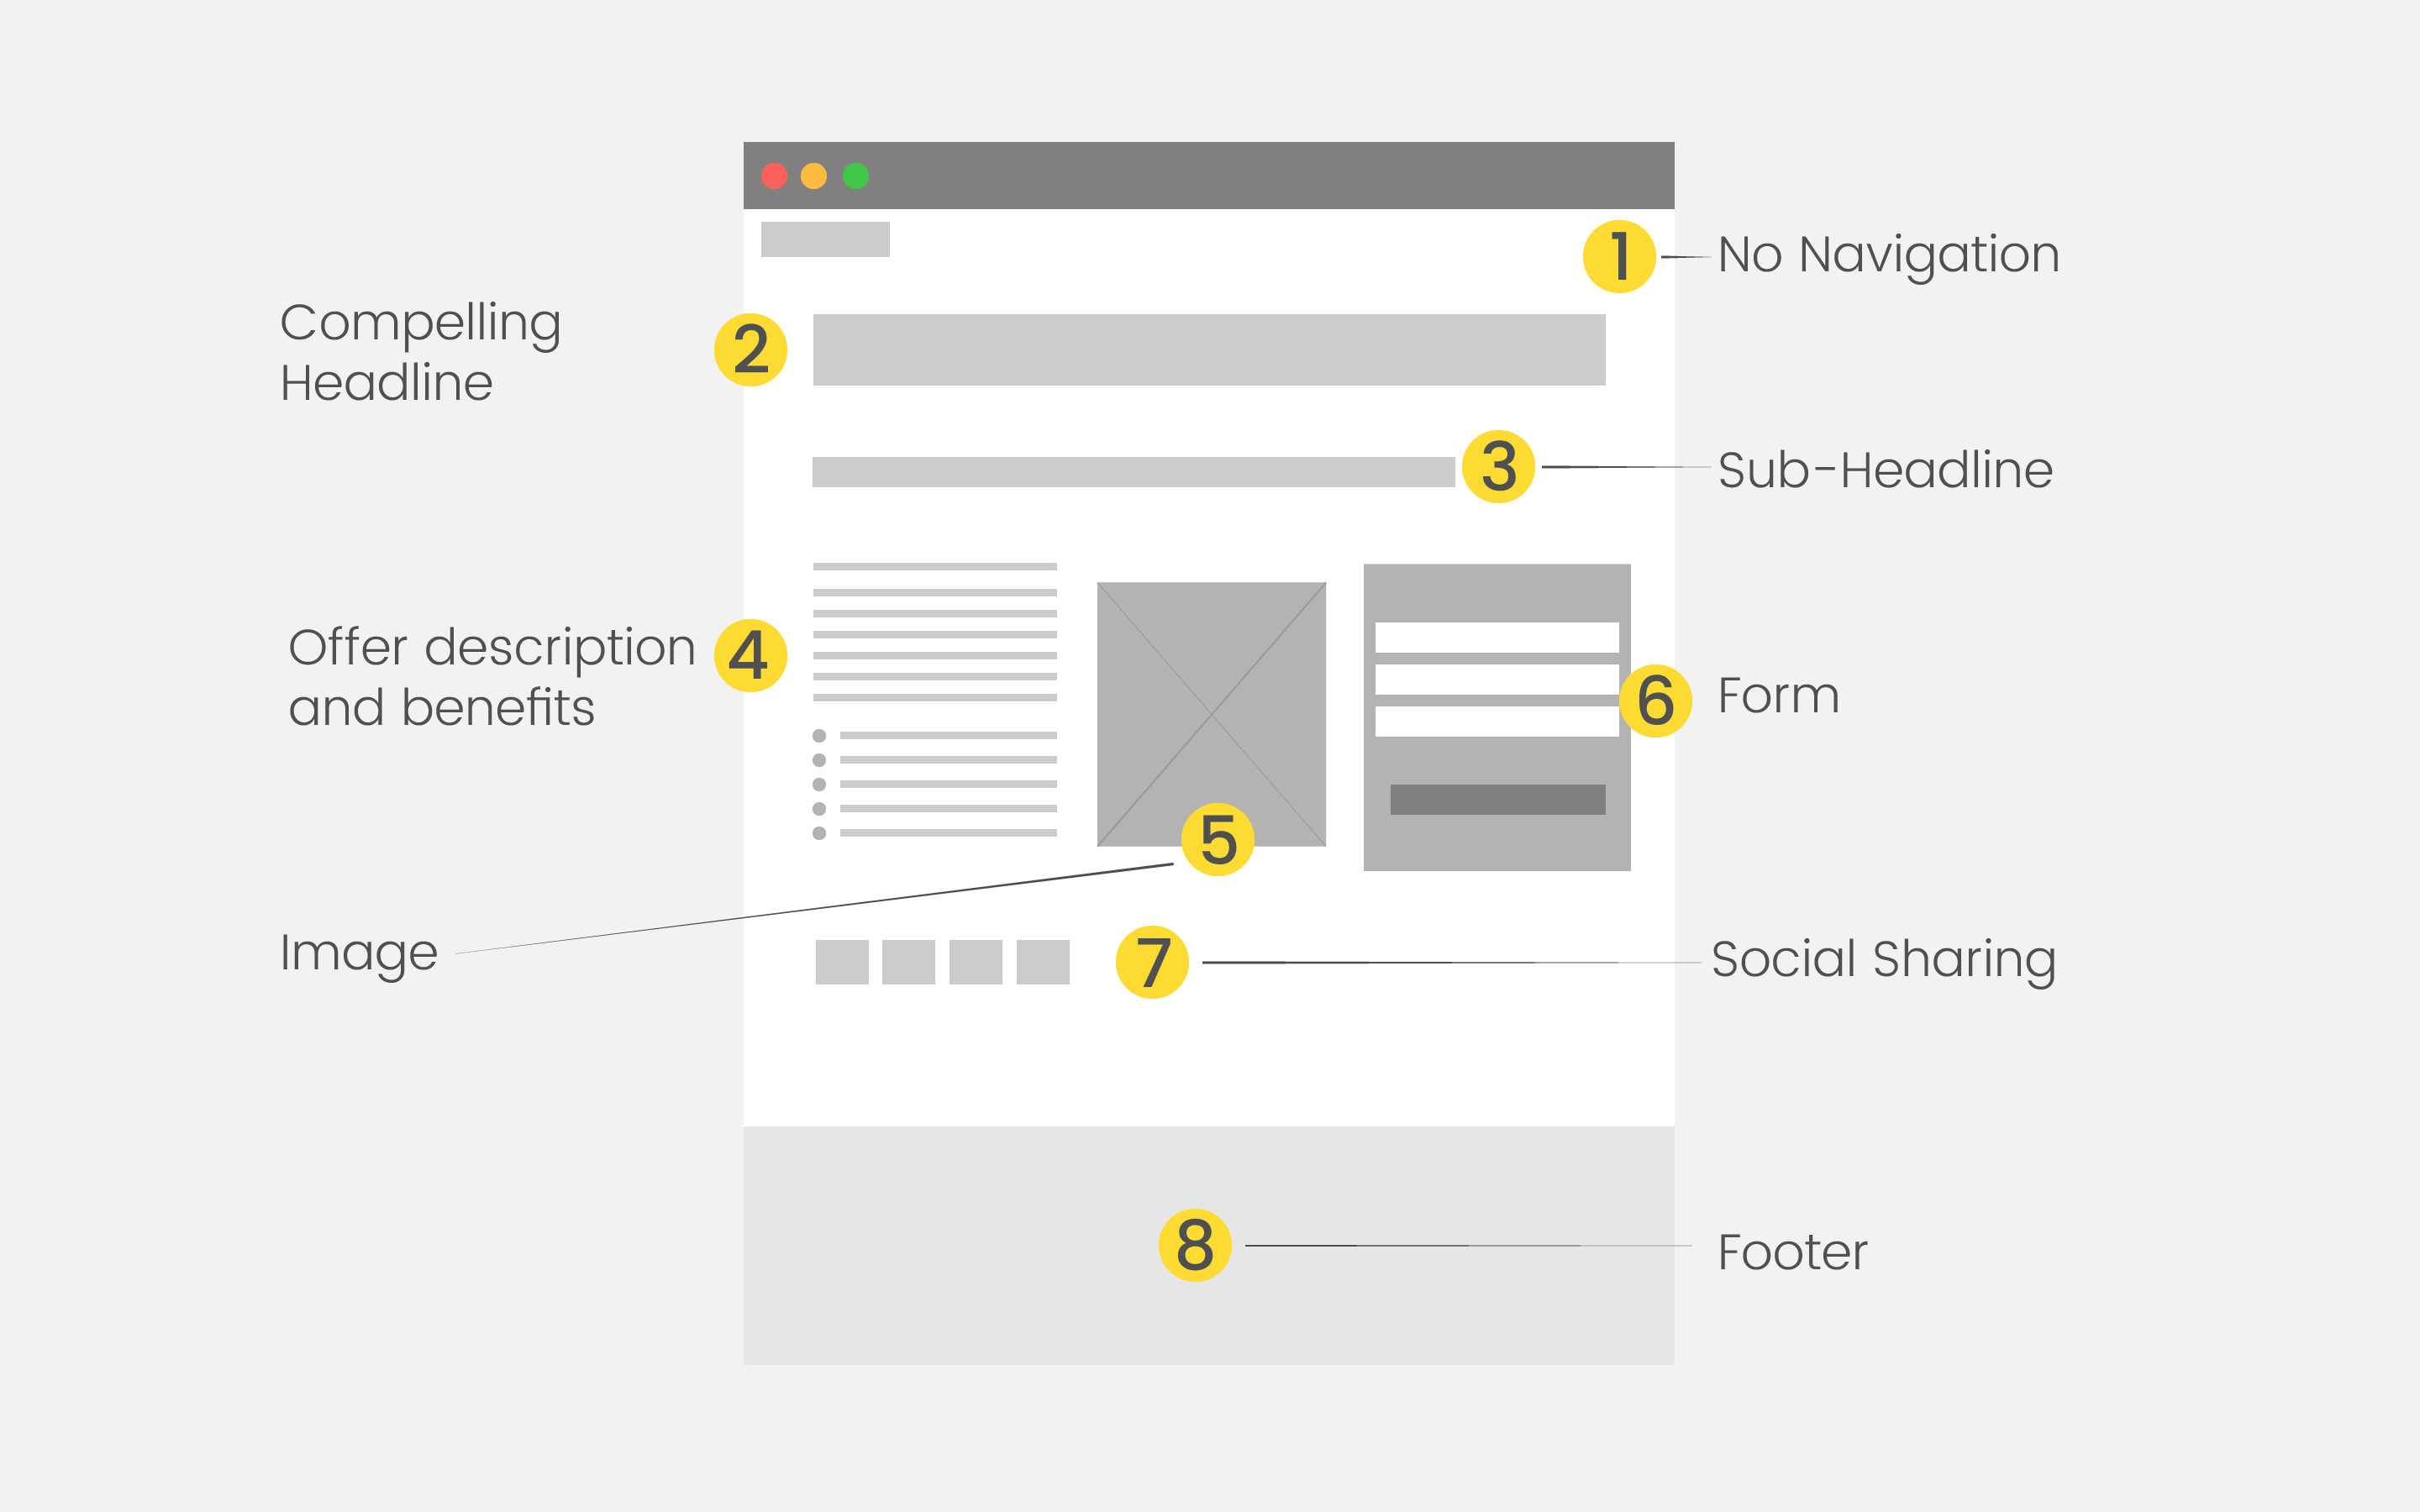 Guide To Running An Inbound Marketing Campaign - Inbound Landing Page Structure Image